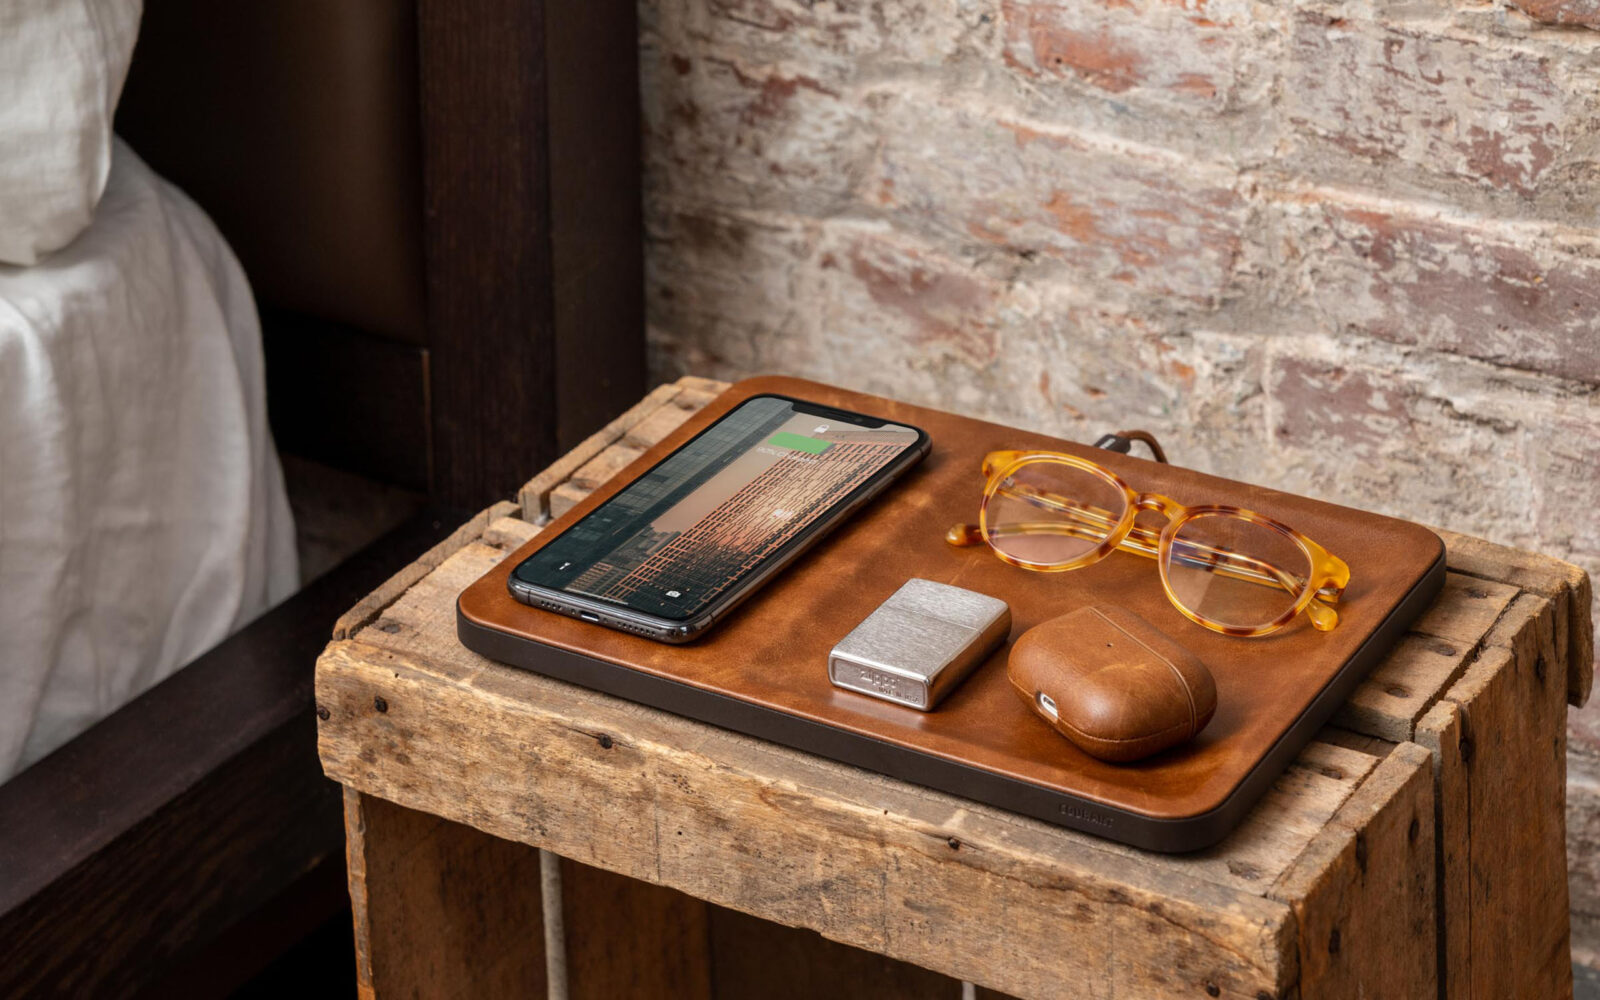 Courant CATCH:3 recharges your smartphone and empties your pockets with elegance